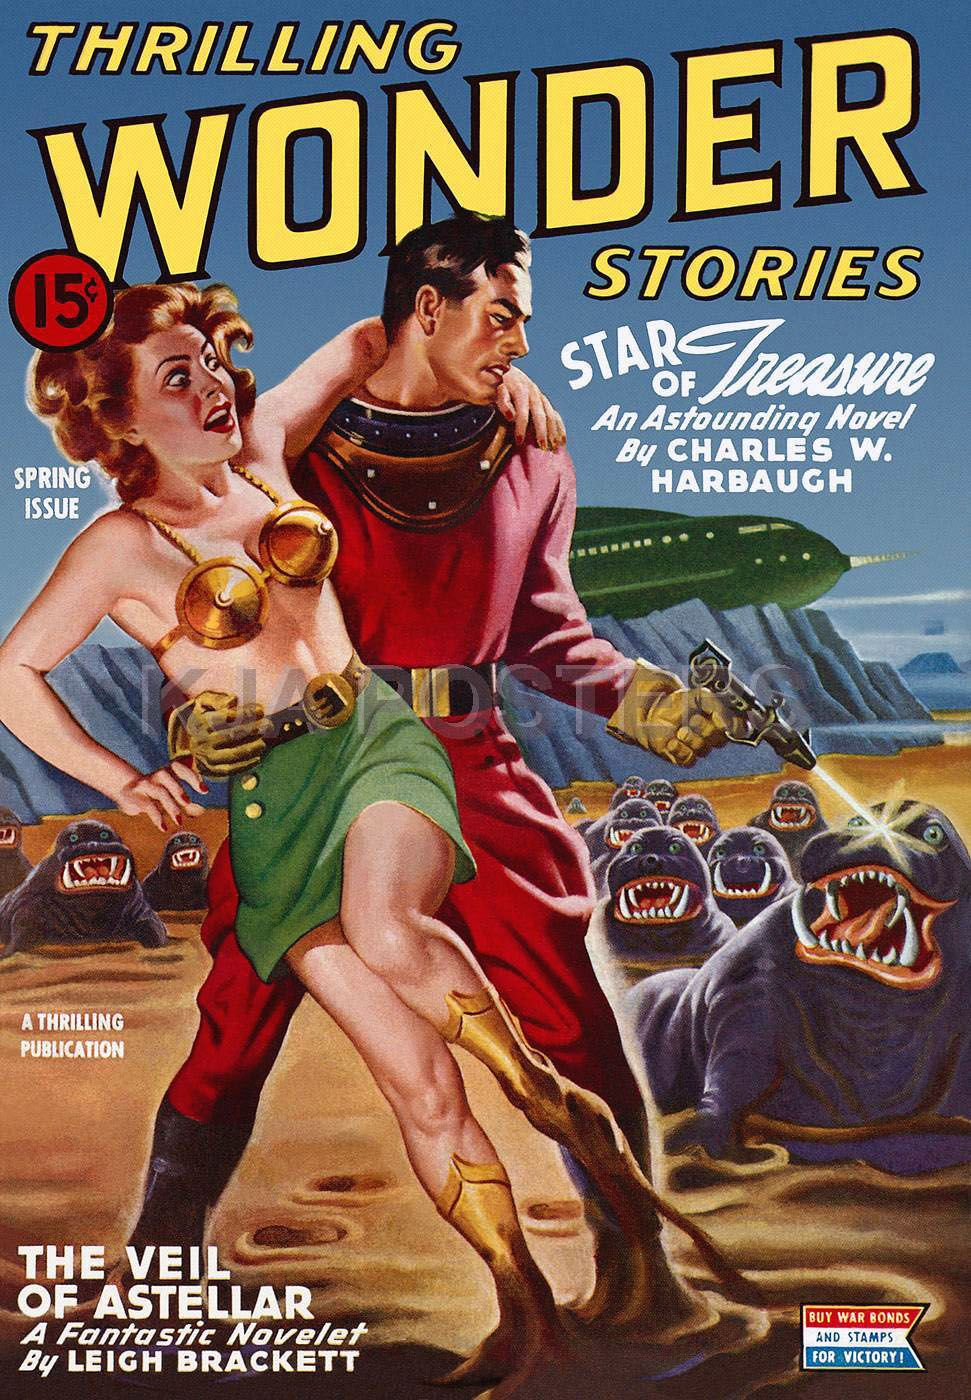 Retro Sci-Fi Magazine cover #50s #60s